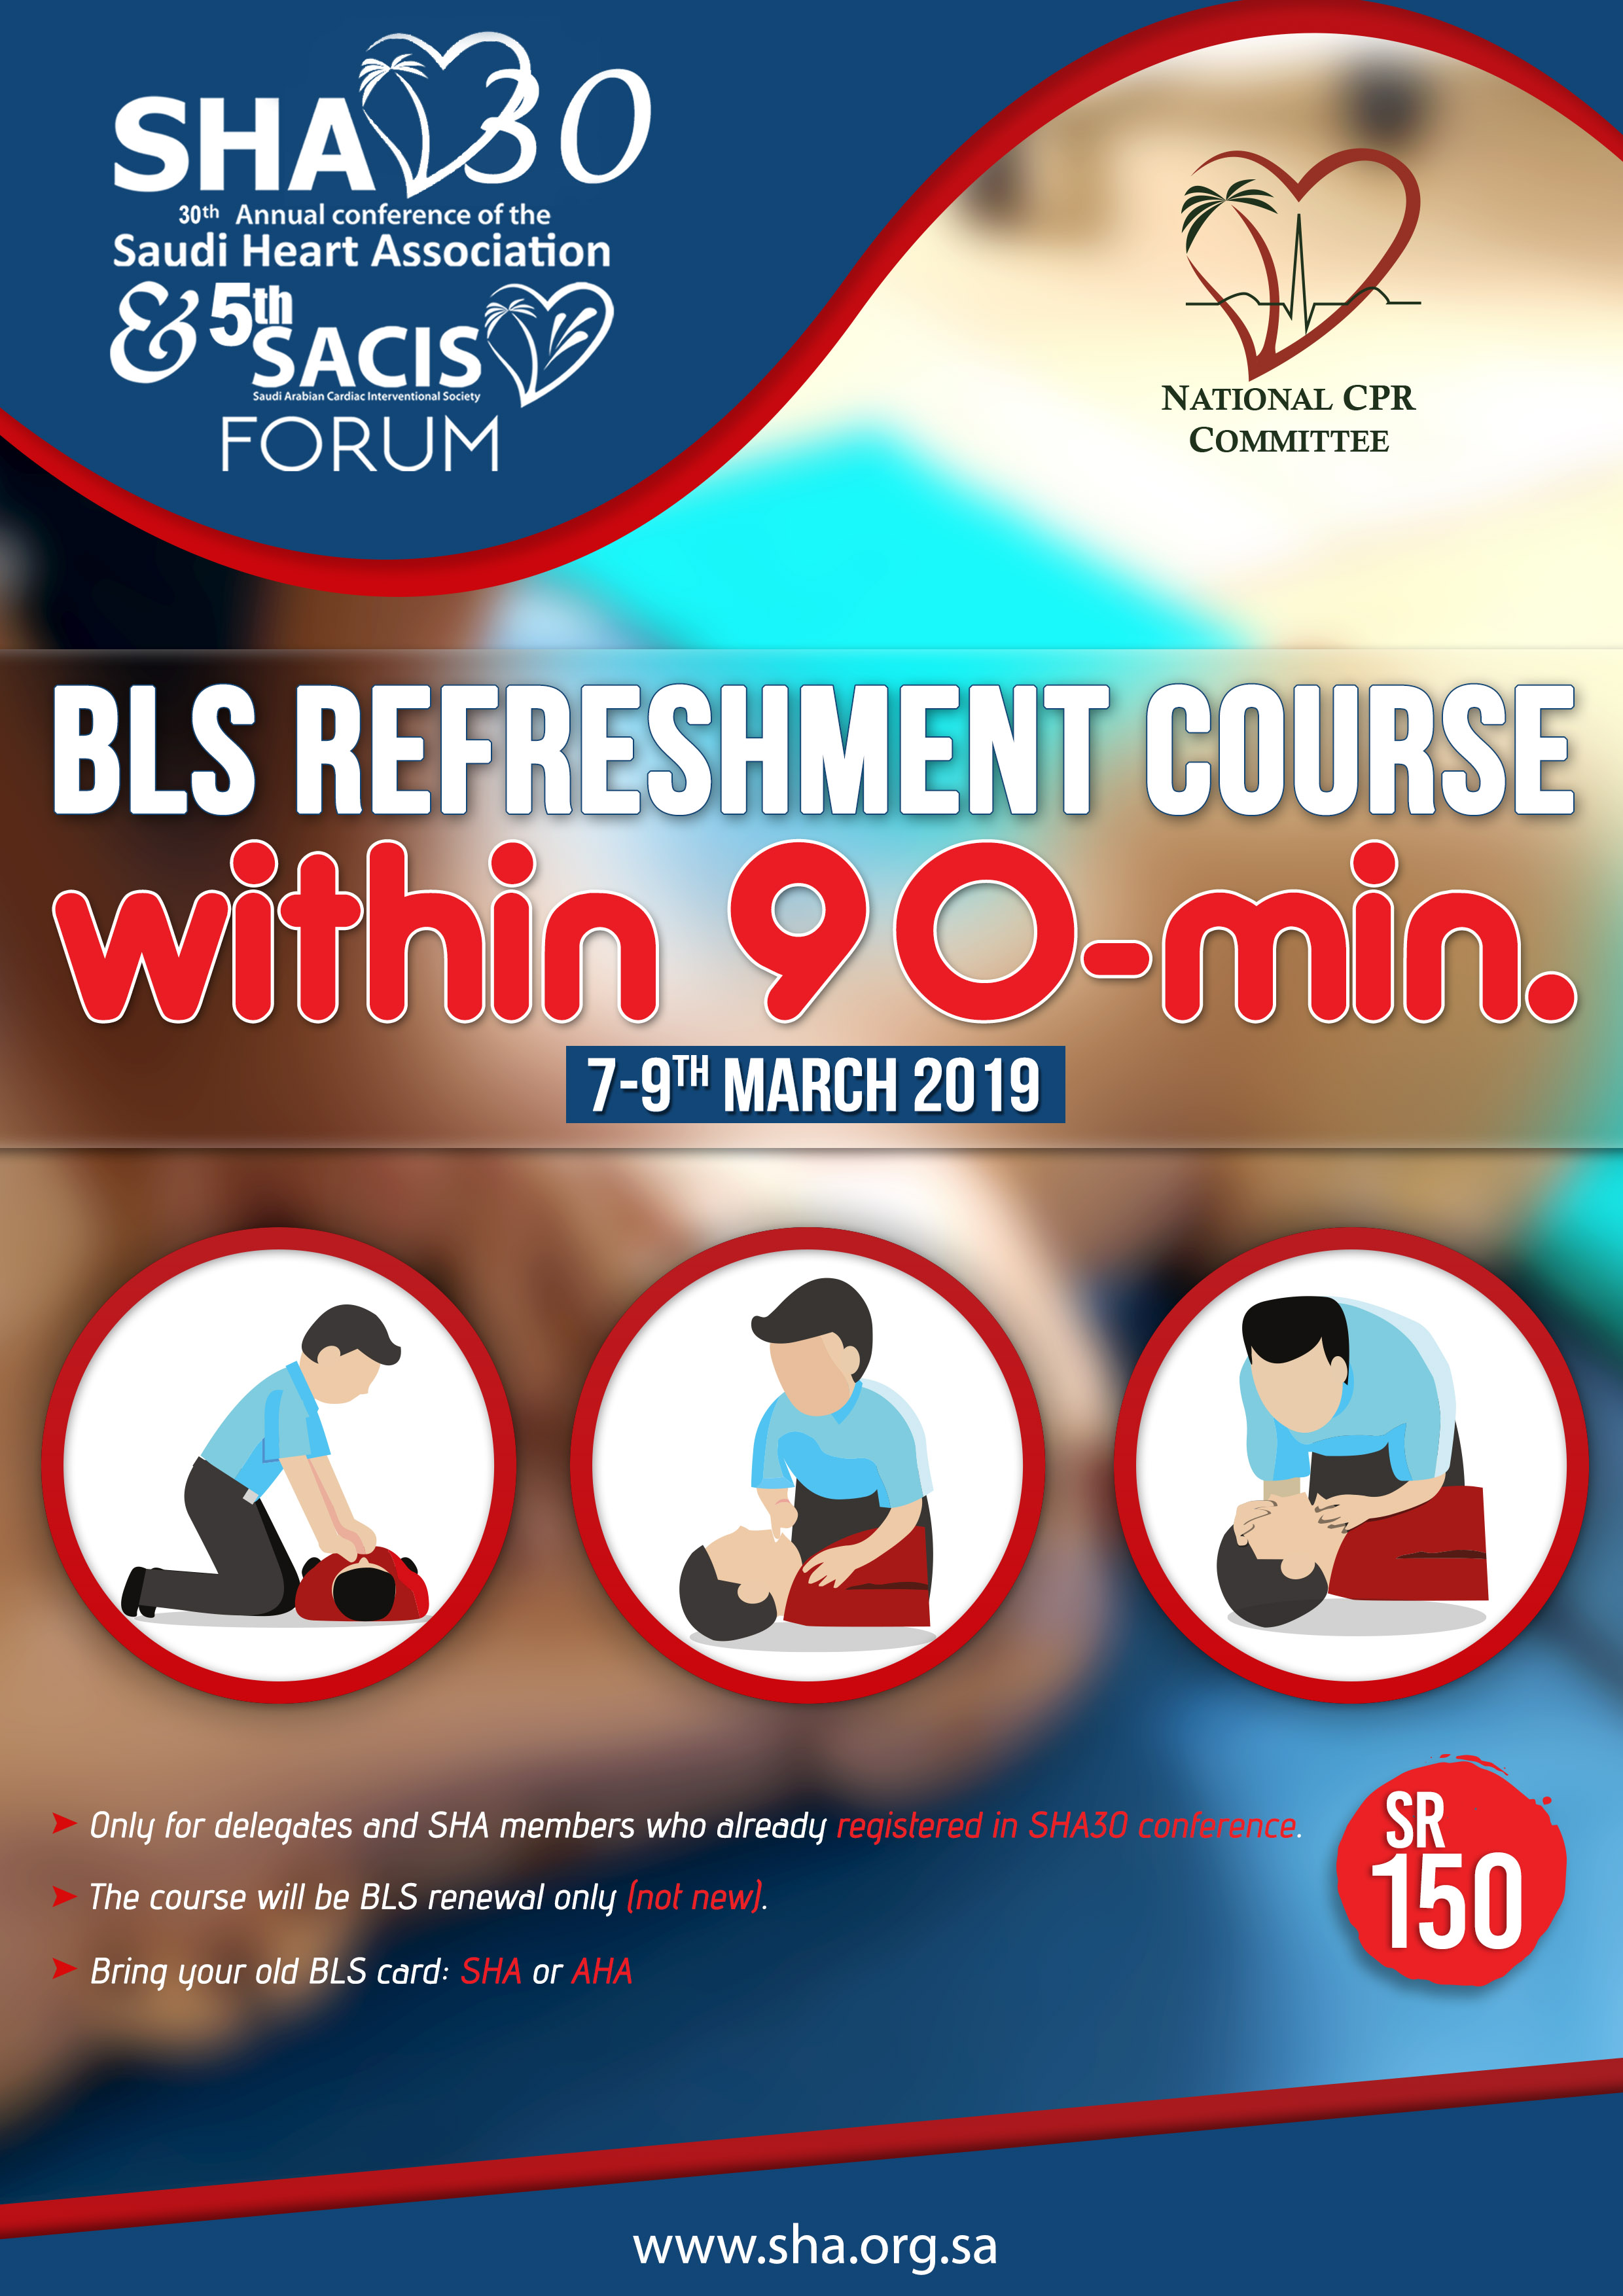 BLS Refreshment Course Within 90-min